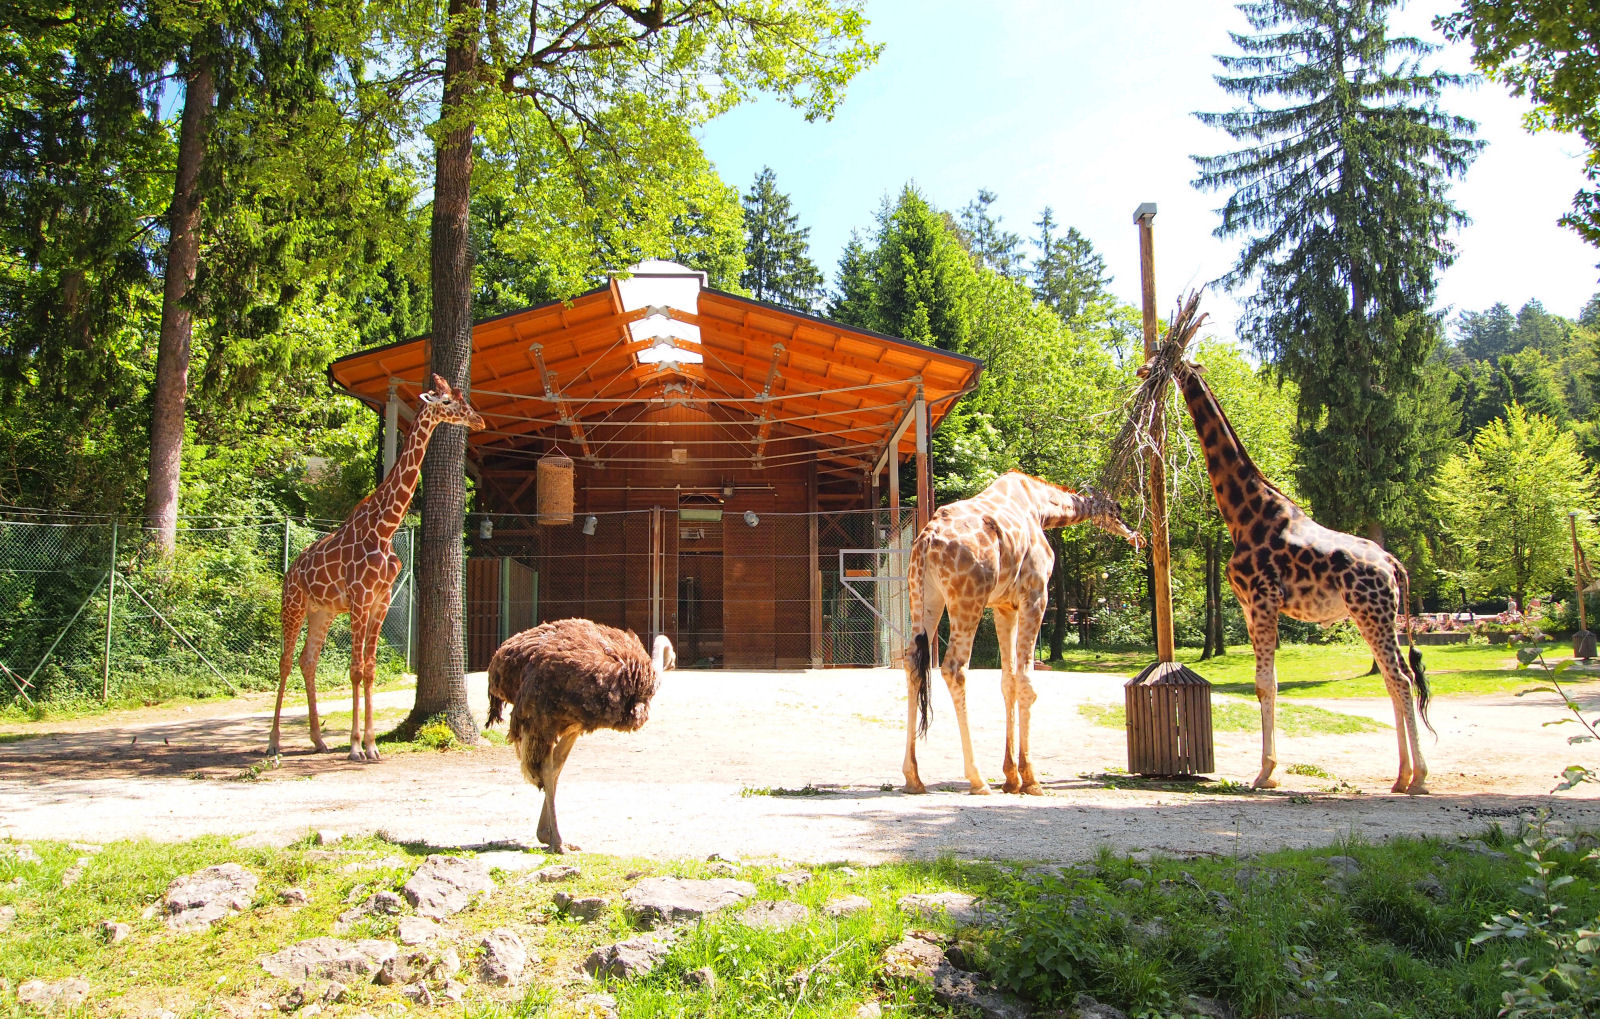 Giraffes in the Ljubljana zoo, Slovenia